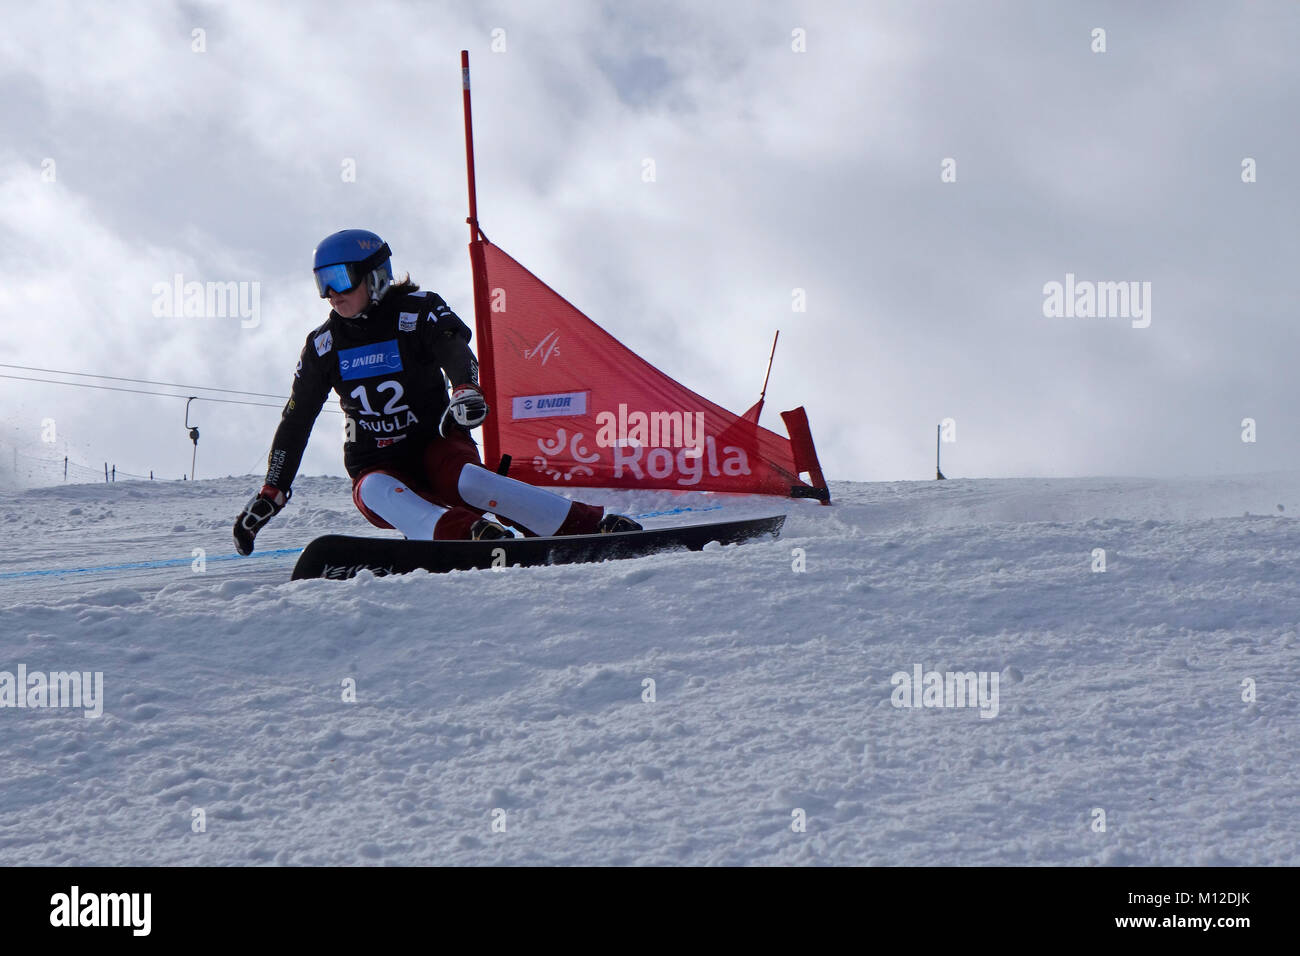 Stefanie Mueller of Switzerland competes in the Snowboard Ladies' Parallel Giant Slalom Qualification. Rogla - Stock Image